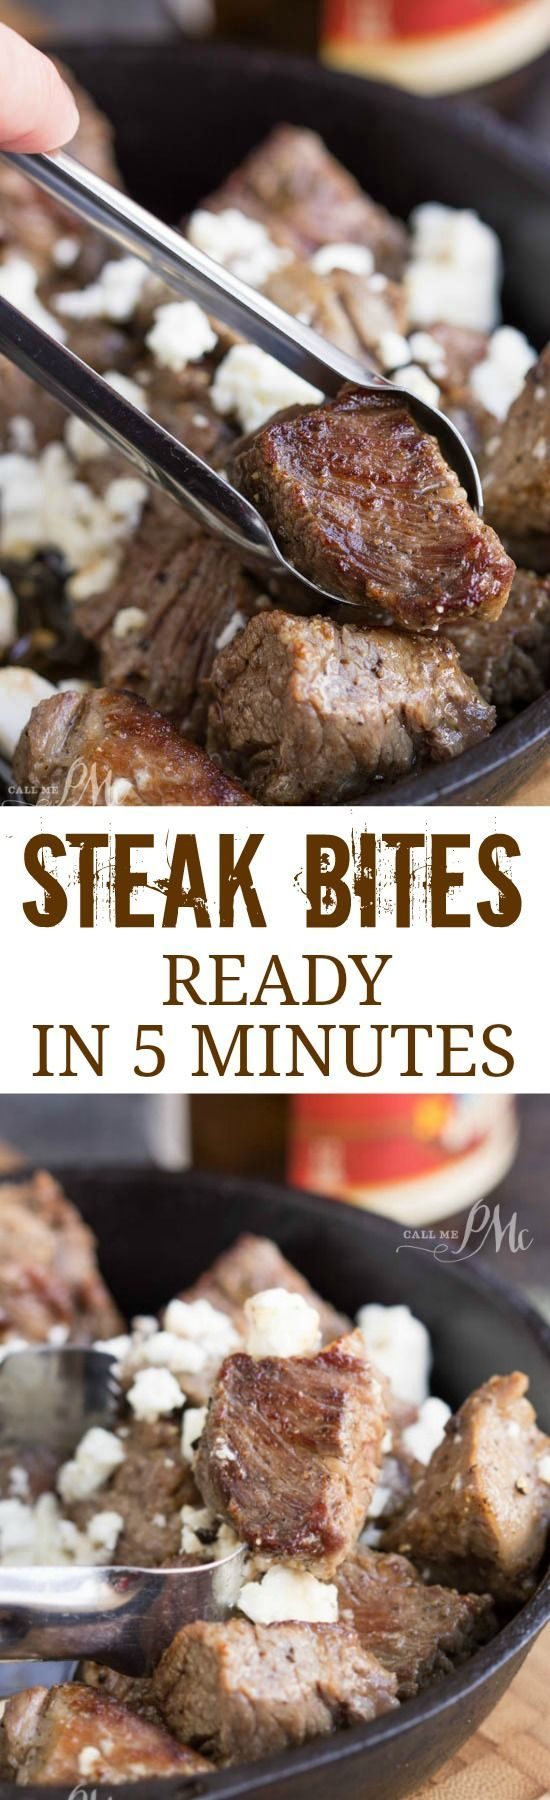 Jefferson Place Steak Bites are savory bites of hearty heaven! They take just minutes to prepare and my whole family loves them!